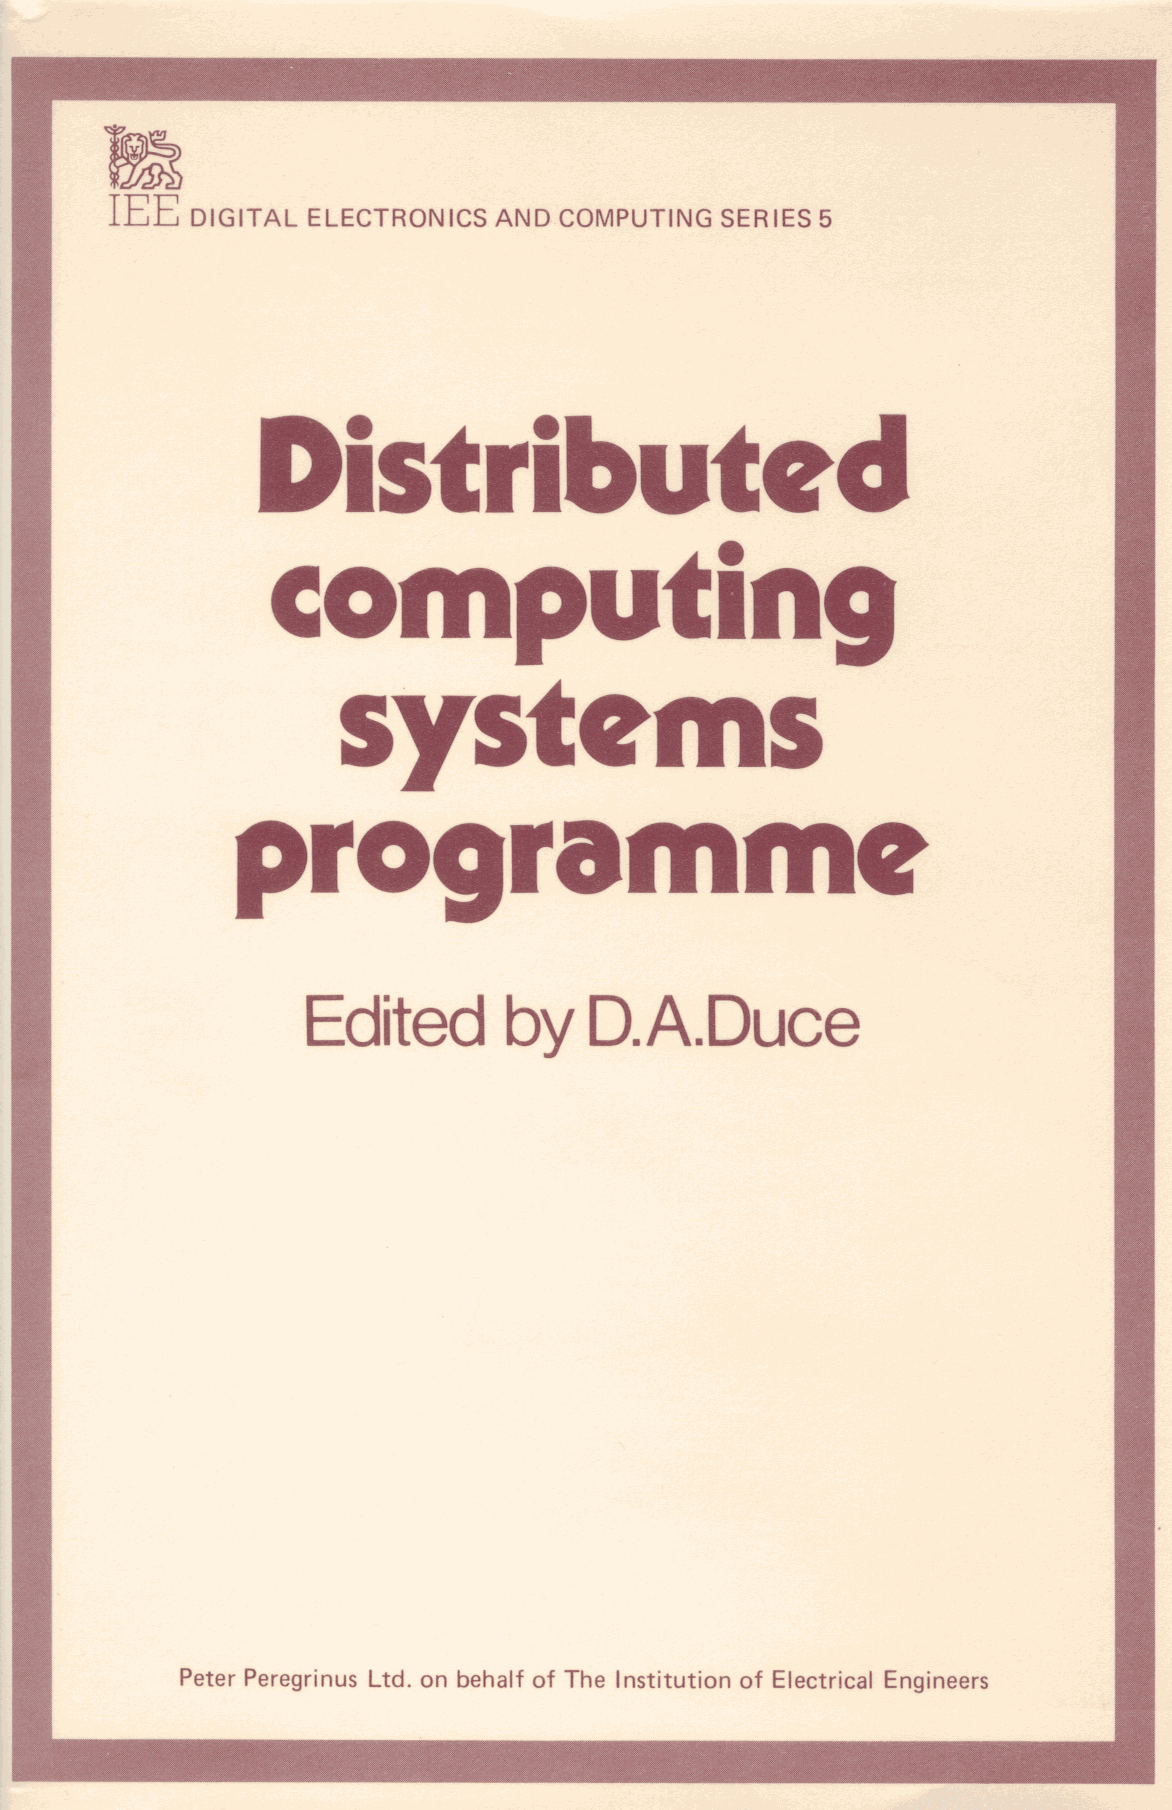 Proceedings of the 1984 DCS Conference